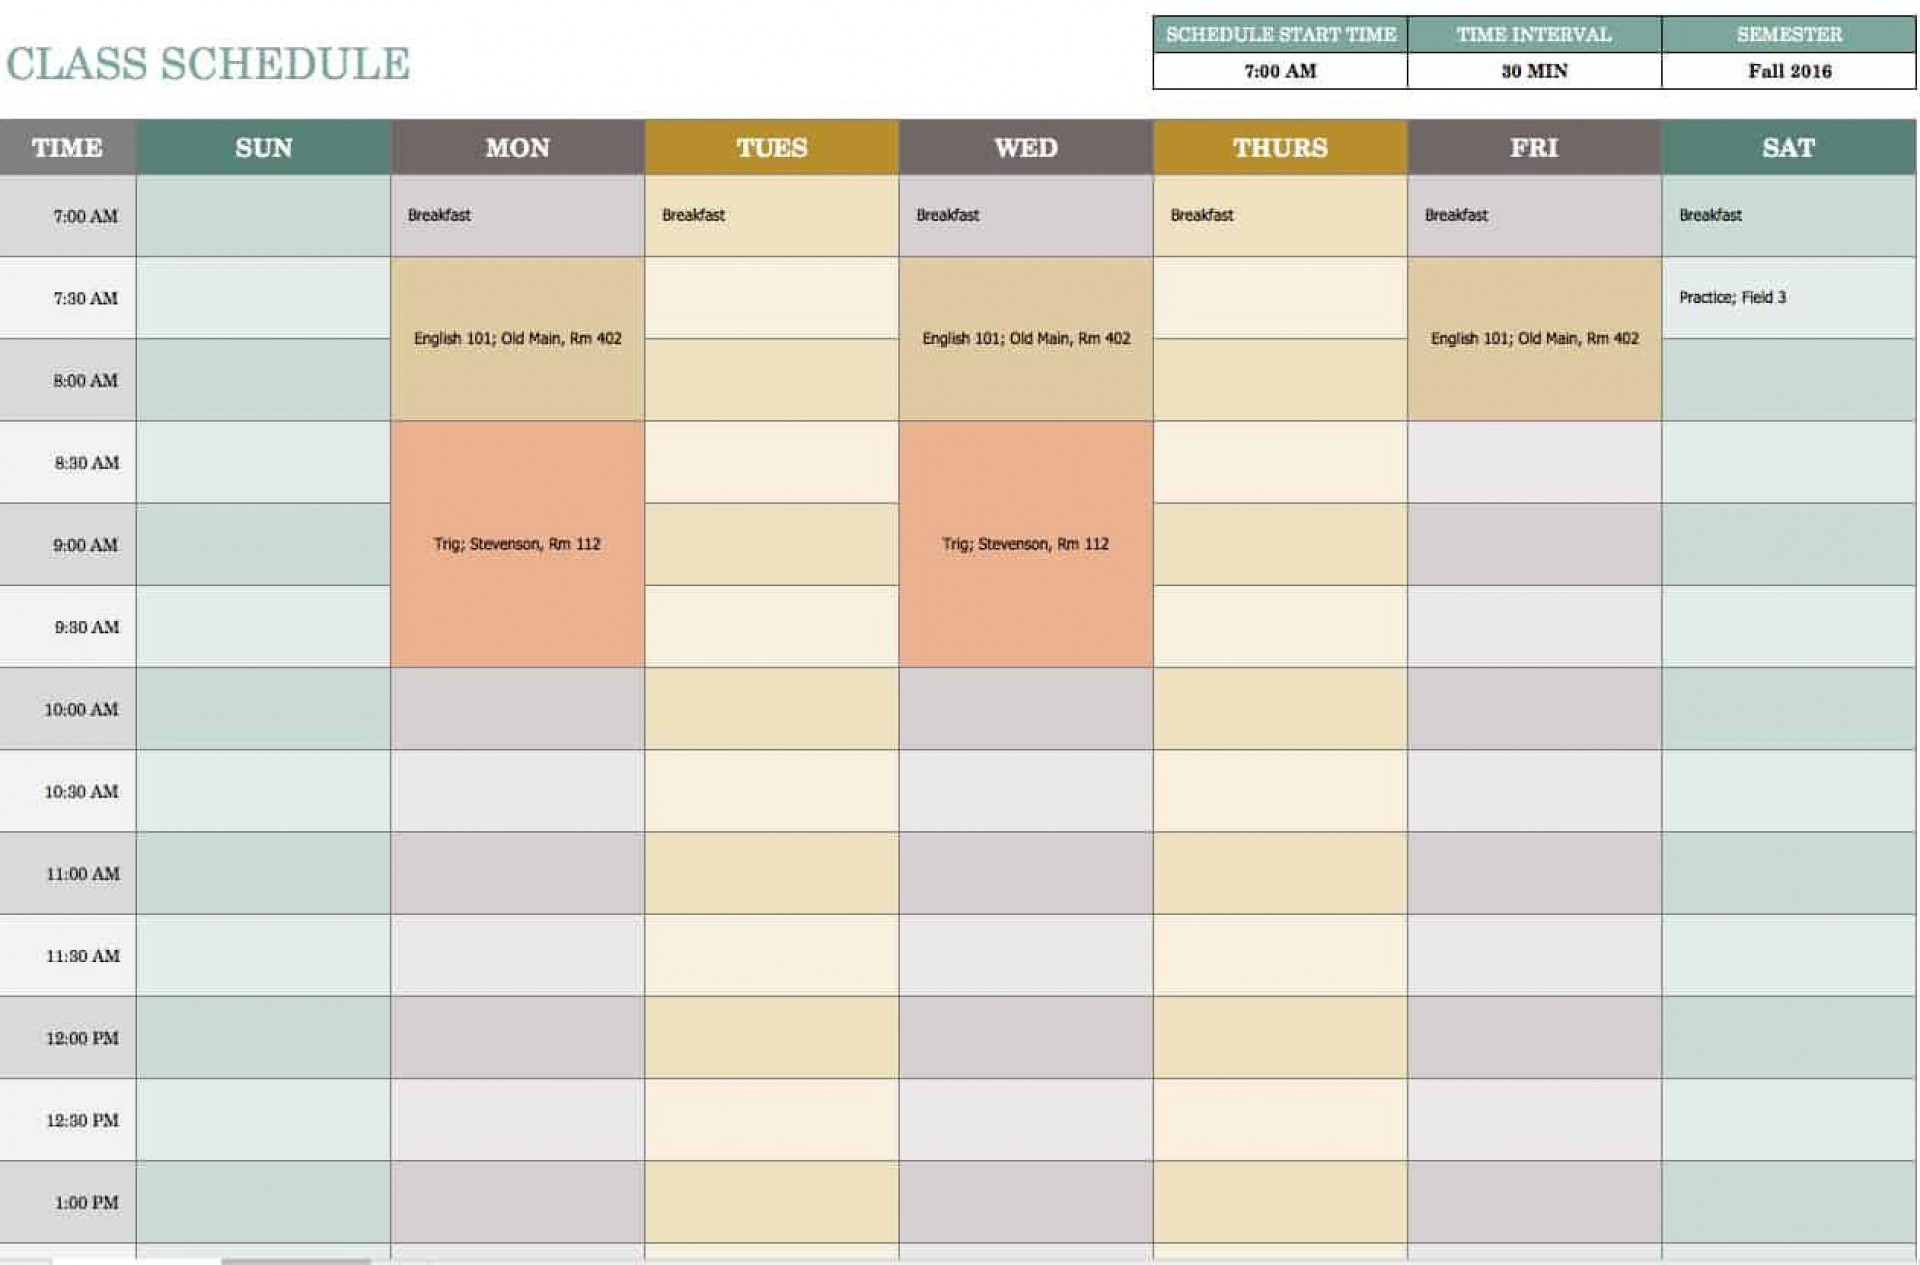 006 Exceptional Excel Weekly Timetable Template Design  Planner 2020 Meal 20191920